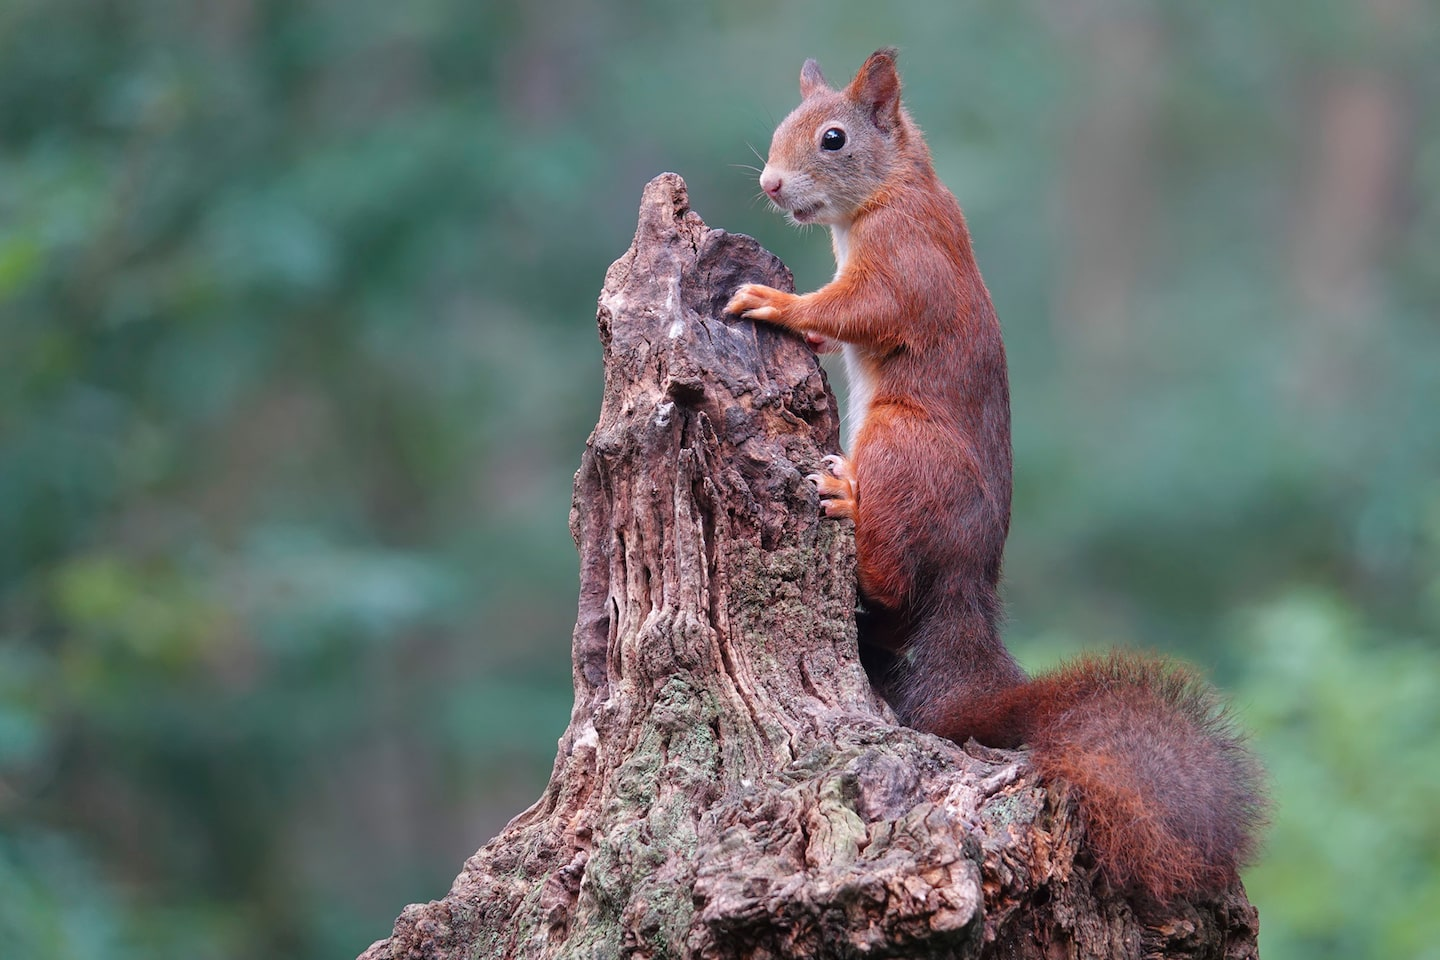 gustav kiburg sony rx10 IV red squirrel